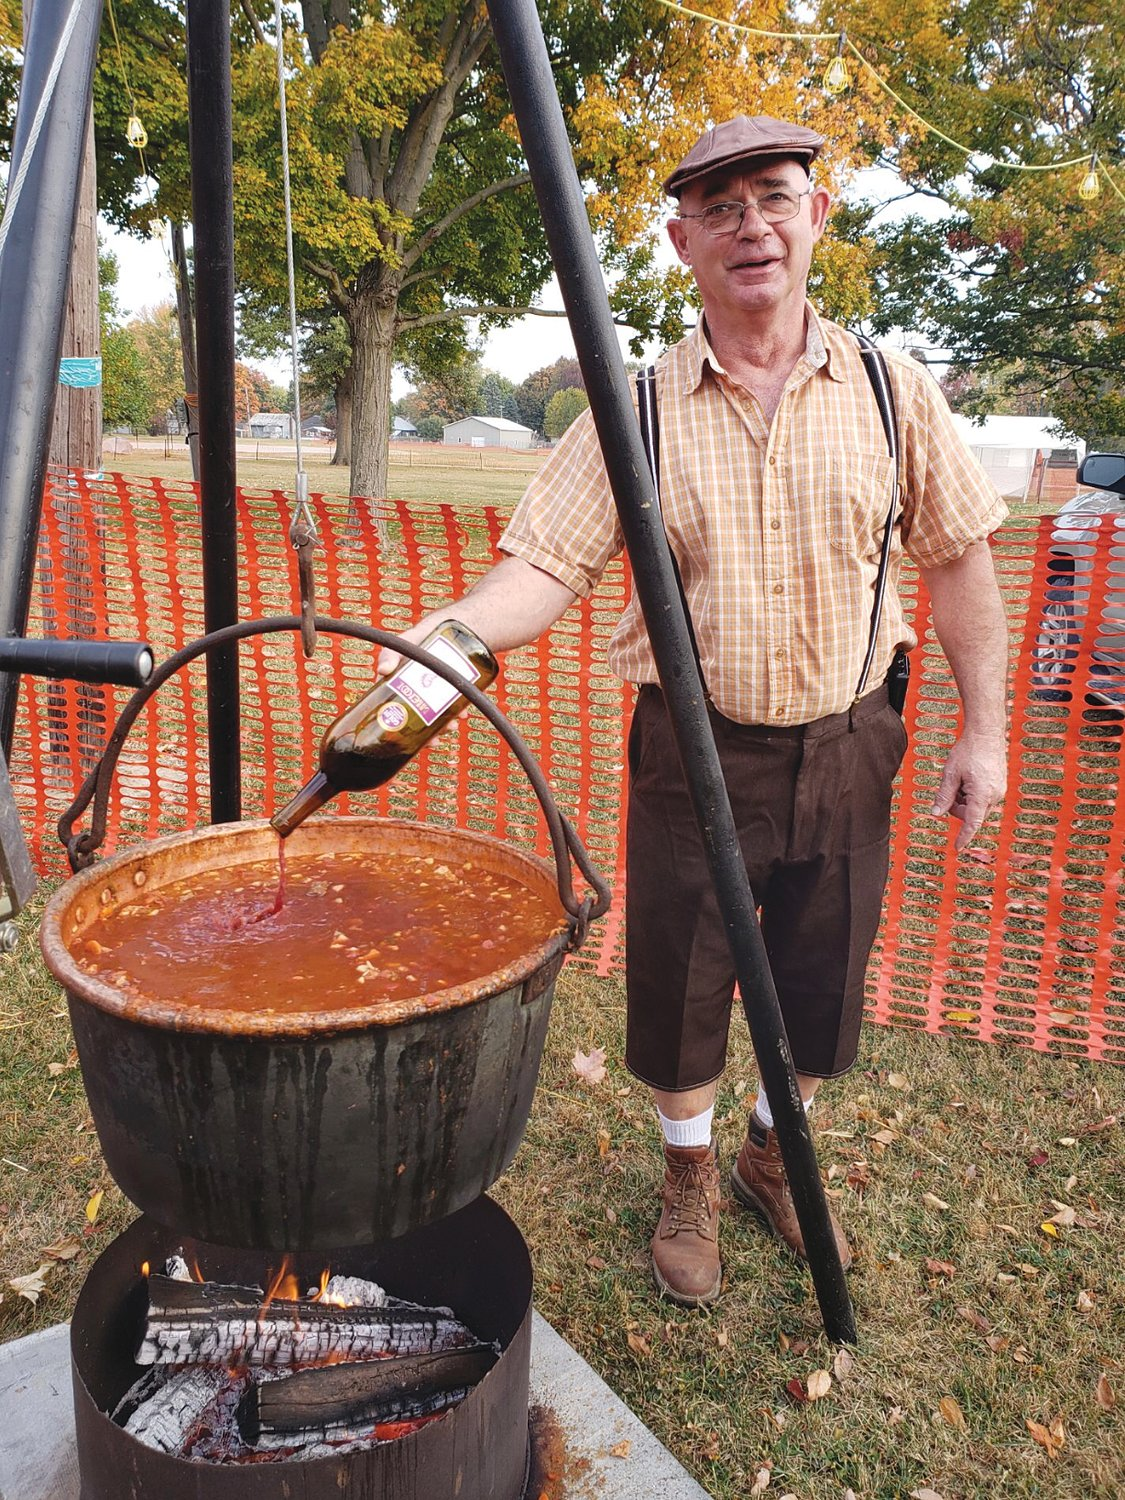 Phil Pirtle cooks goulash over a fire during Oktoberfest 2020 at the Waynetown Park.